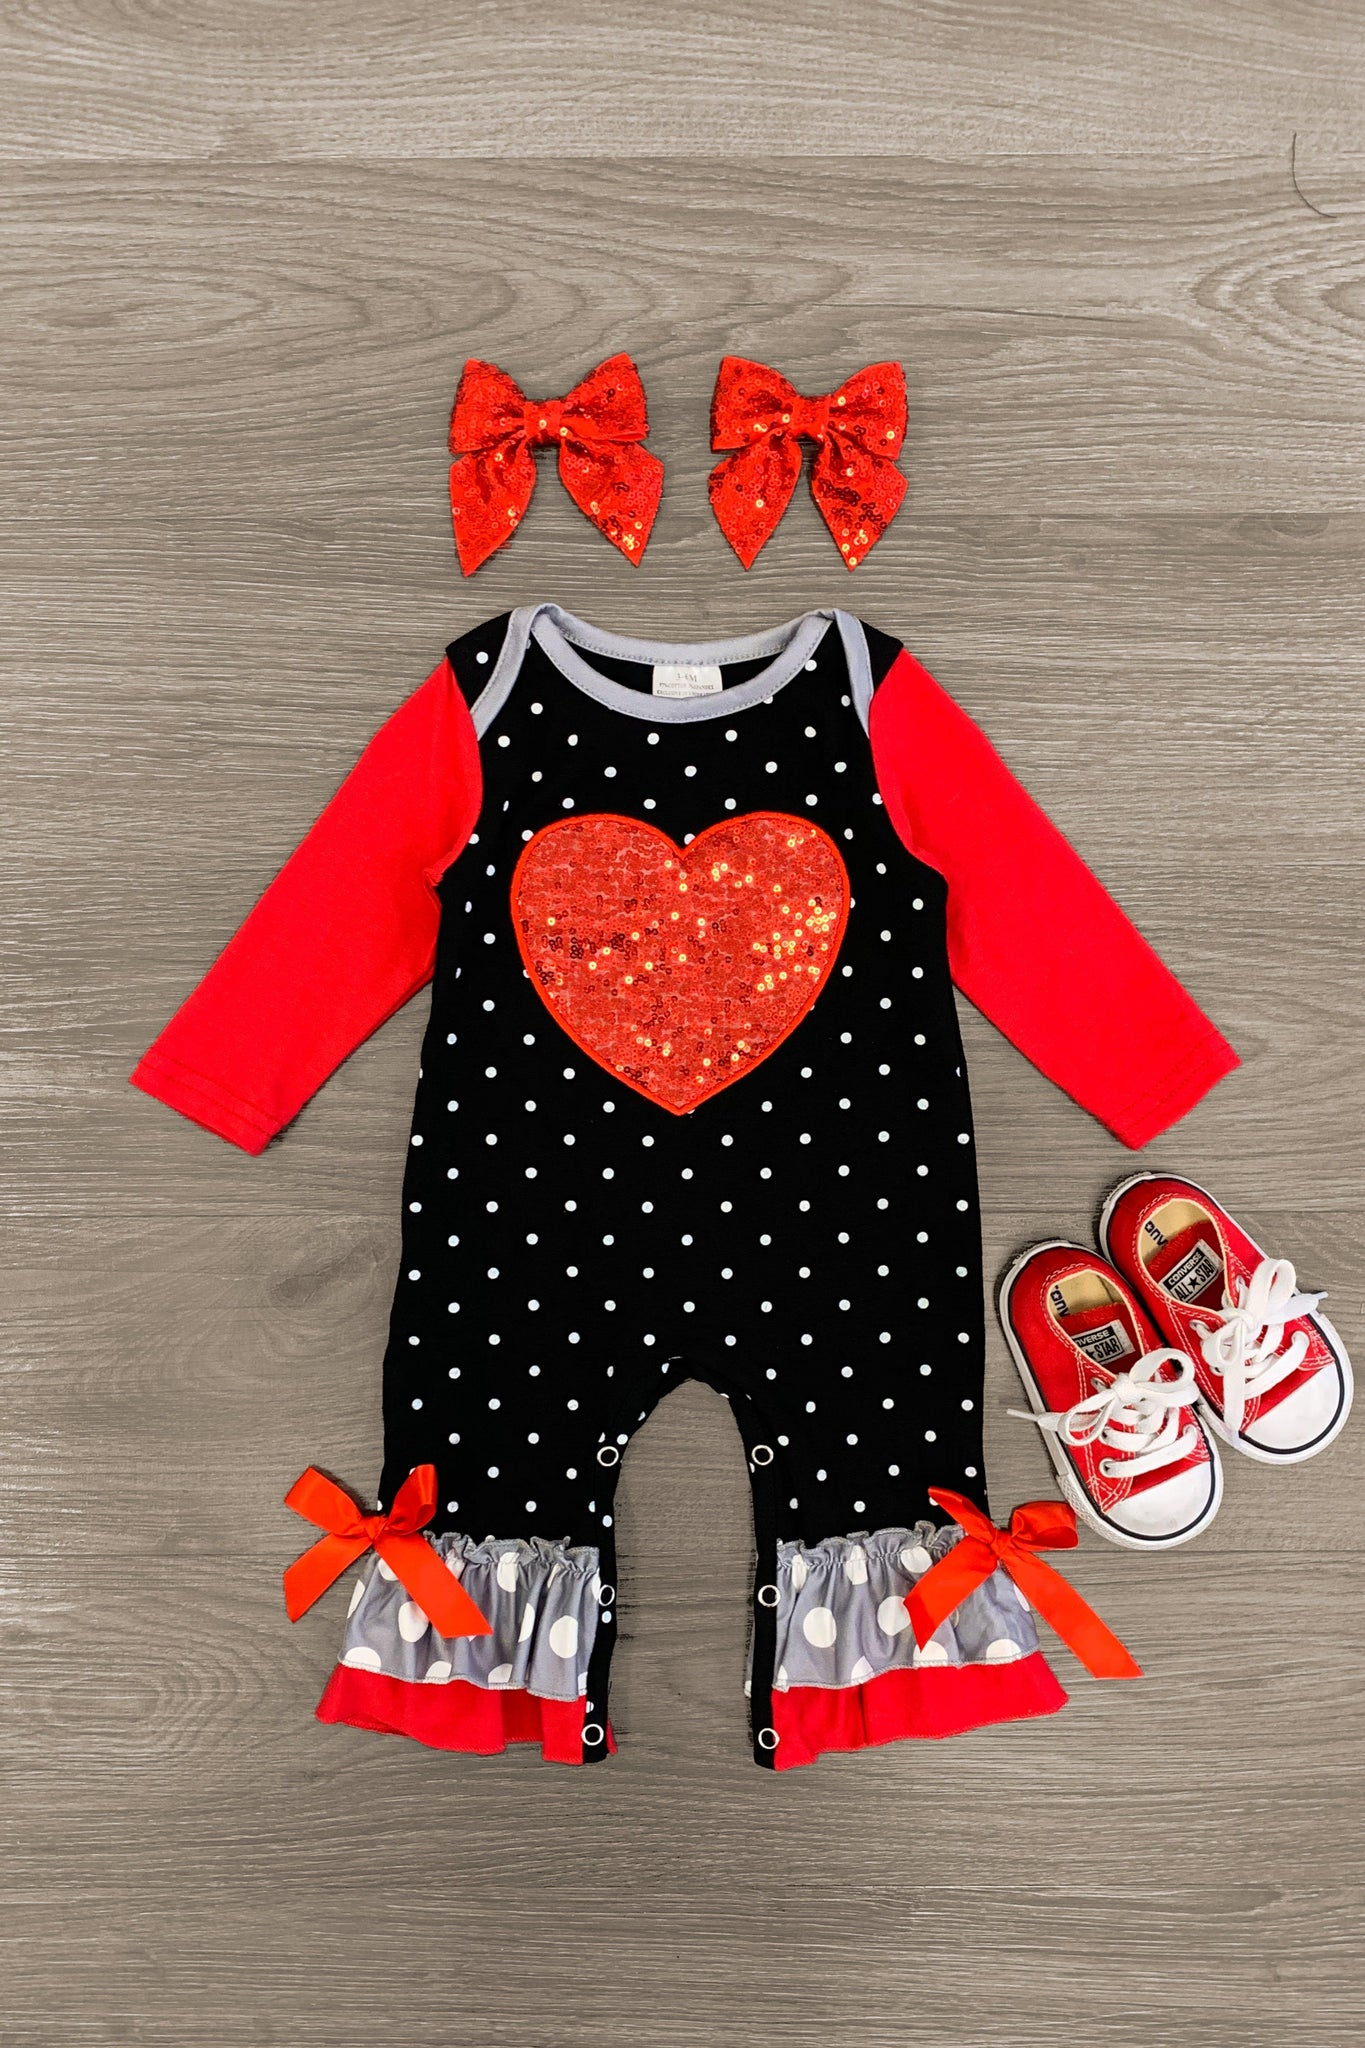 Sequin Heart Black & Red Polka Dot Ruffle Romper - Sparkle in Pink